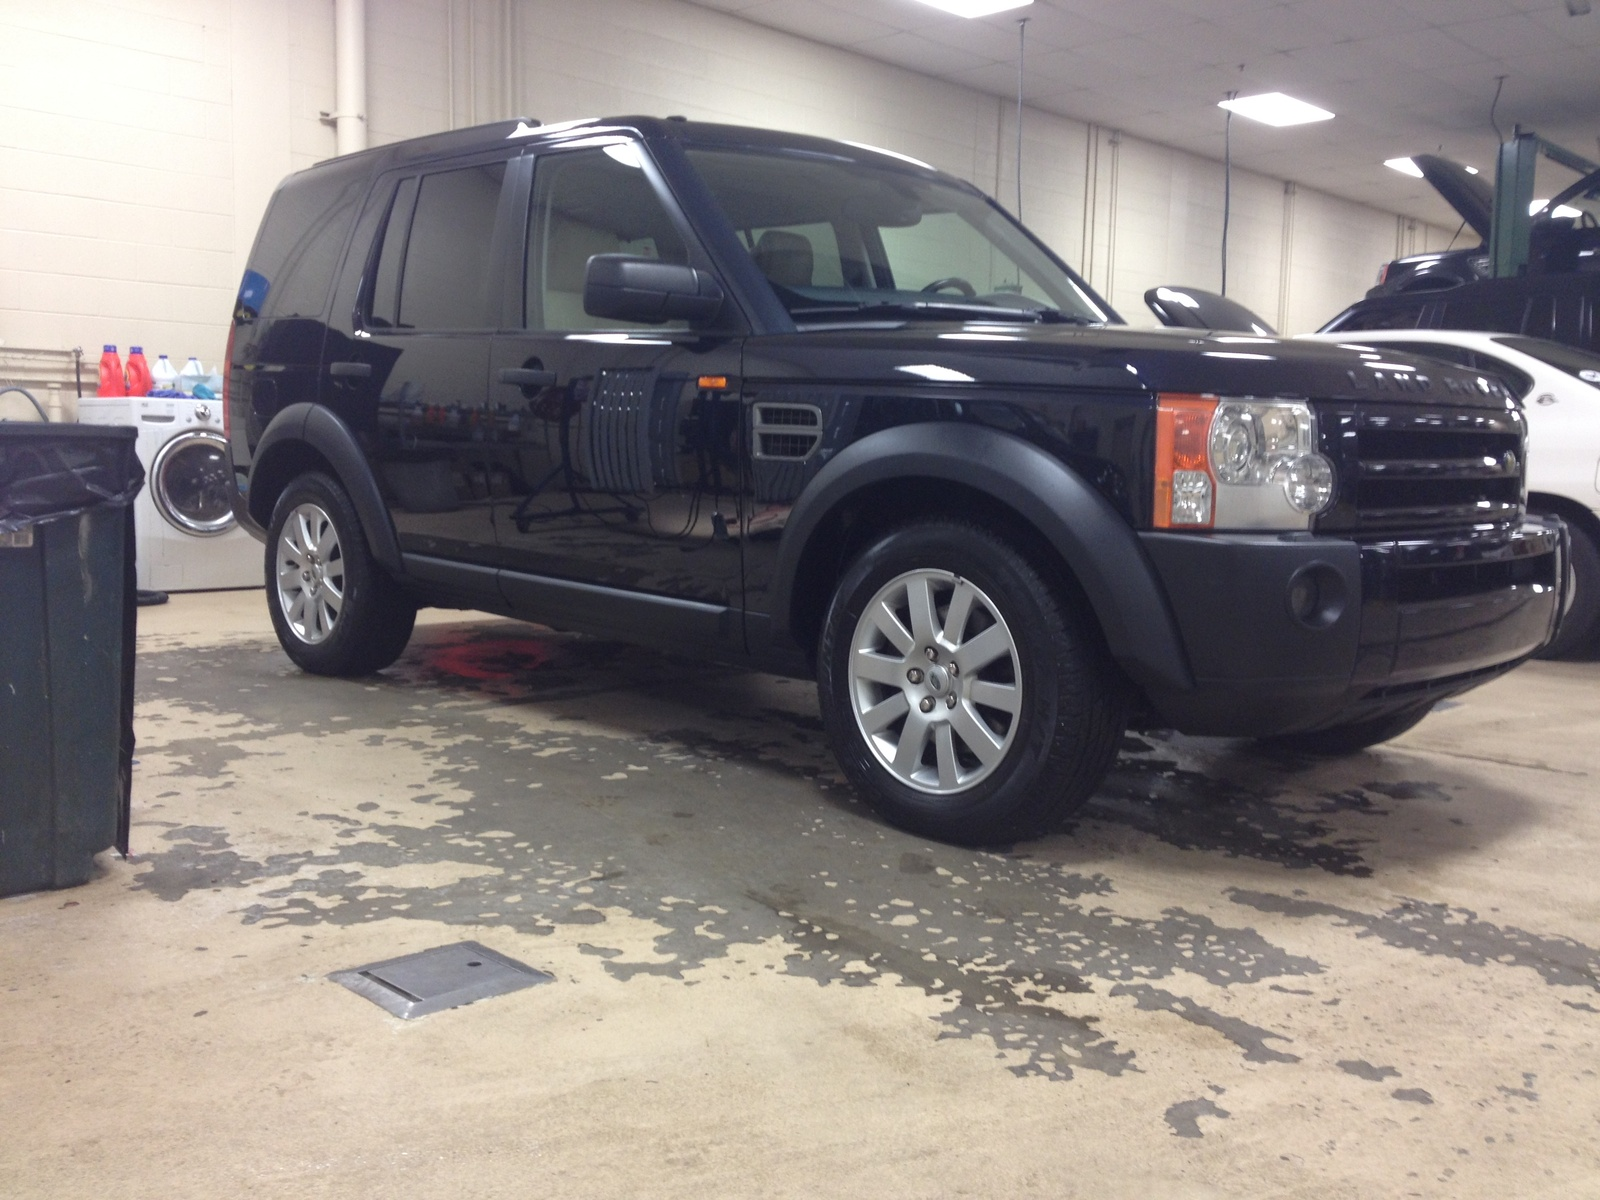 used land rover lr3 for sale detroit mi cargurus. Black Bedroom Furniture Sets. Home Design Ideas